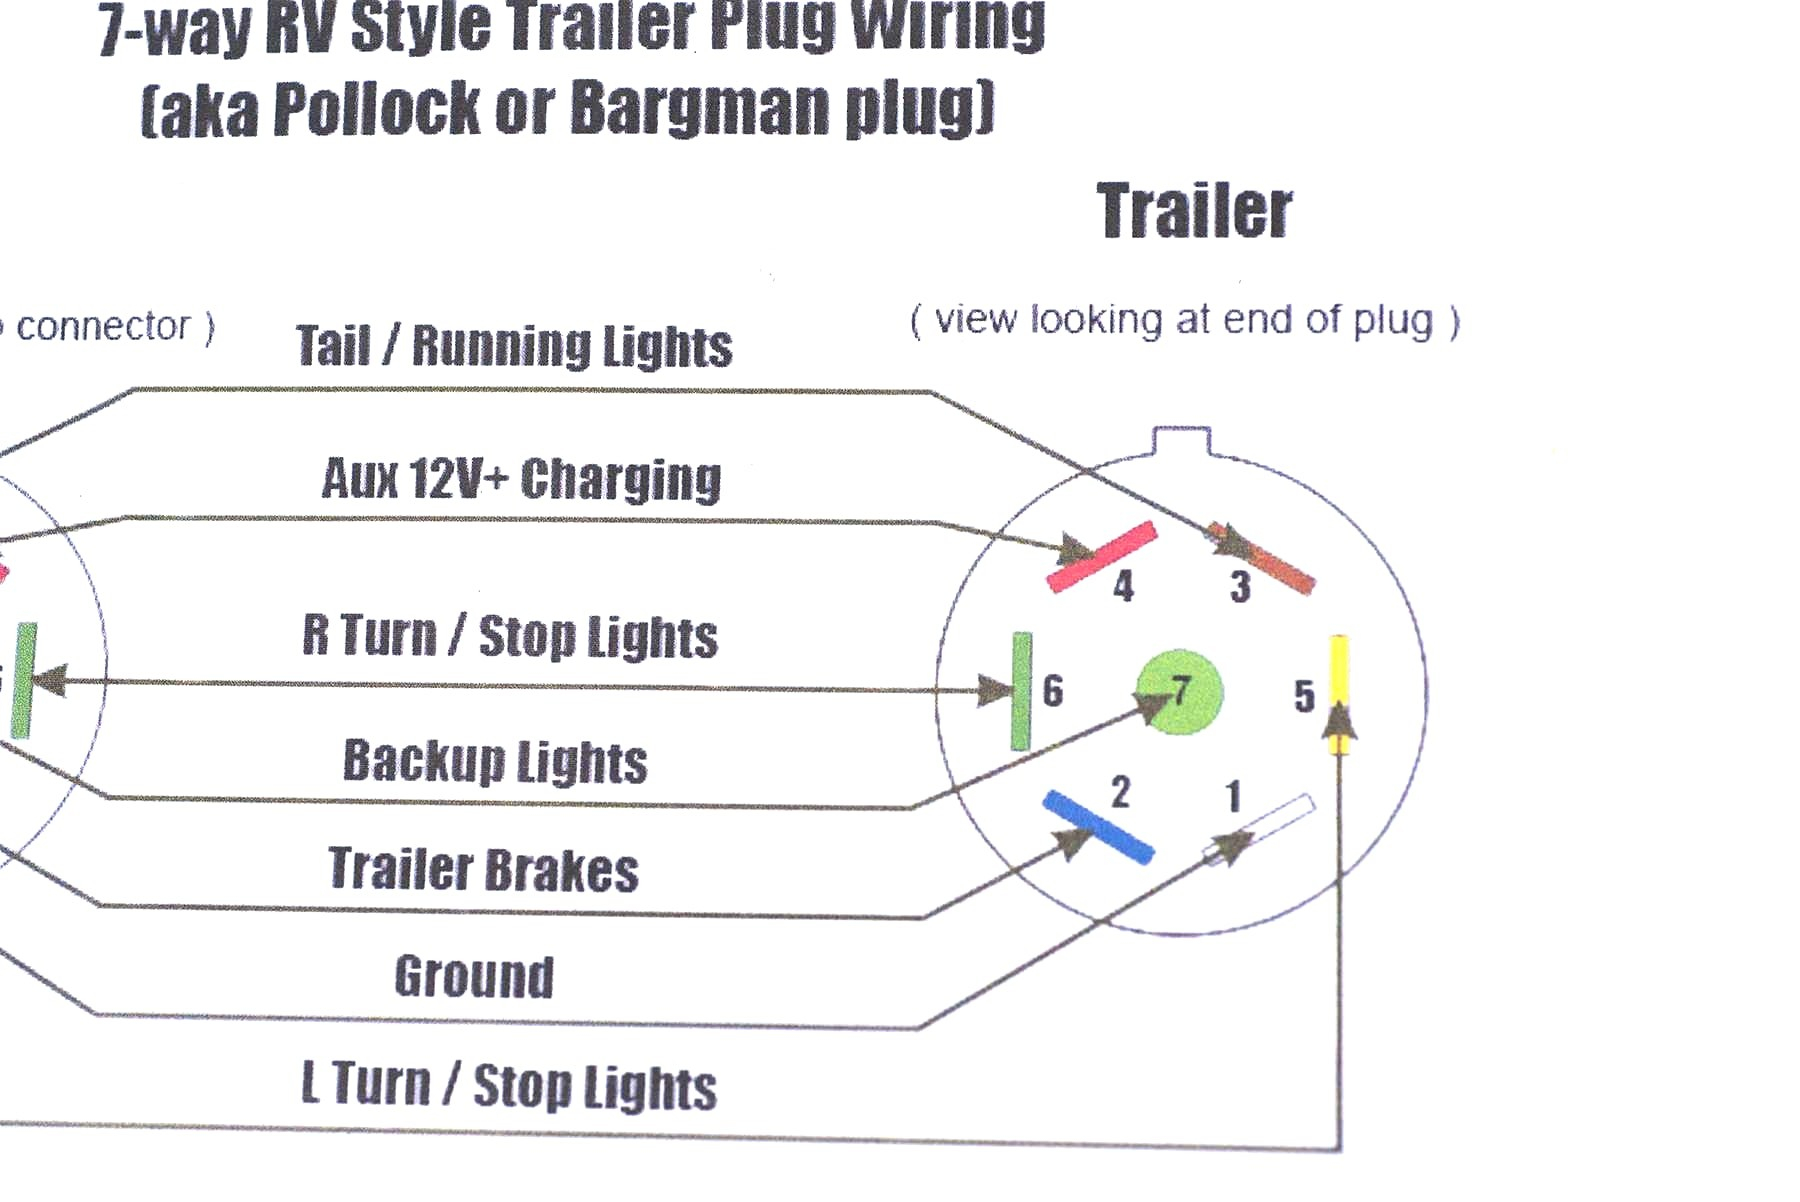 hopkins trailer plug wiring diagram Collection-Wiring Diagram For Hopkins Trailer Plug Fresh 7 Pin 20-k